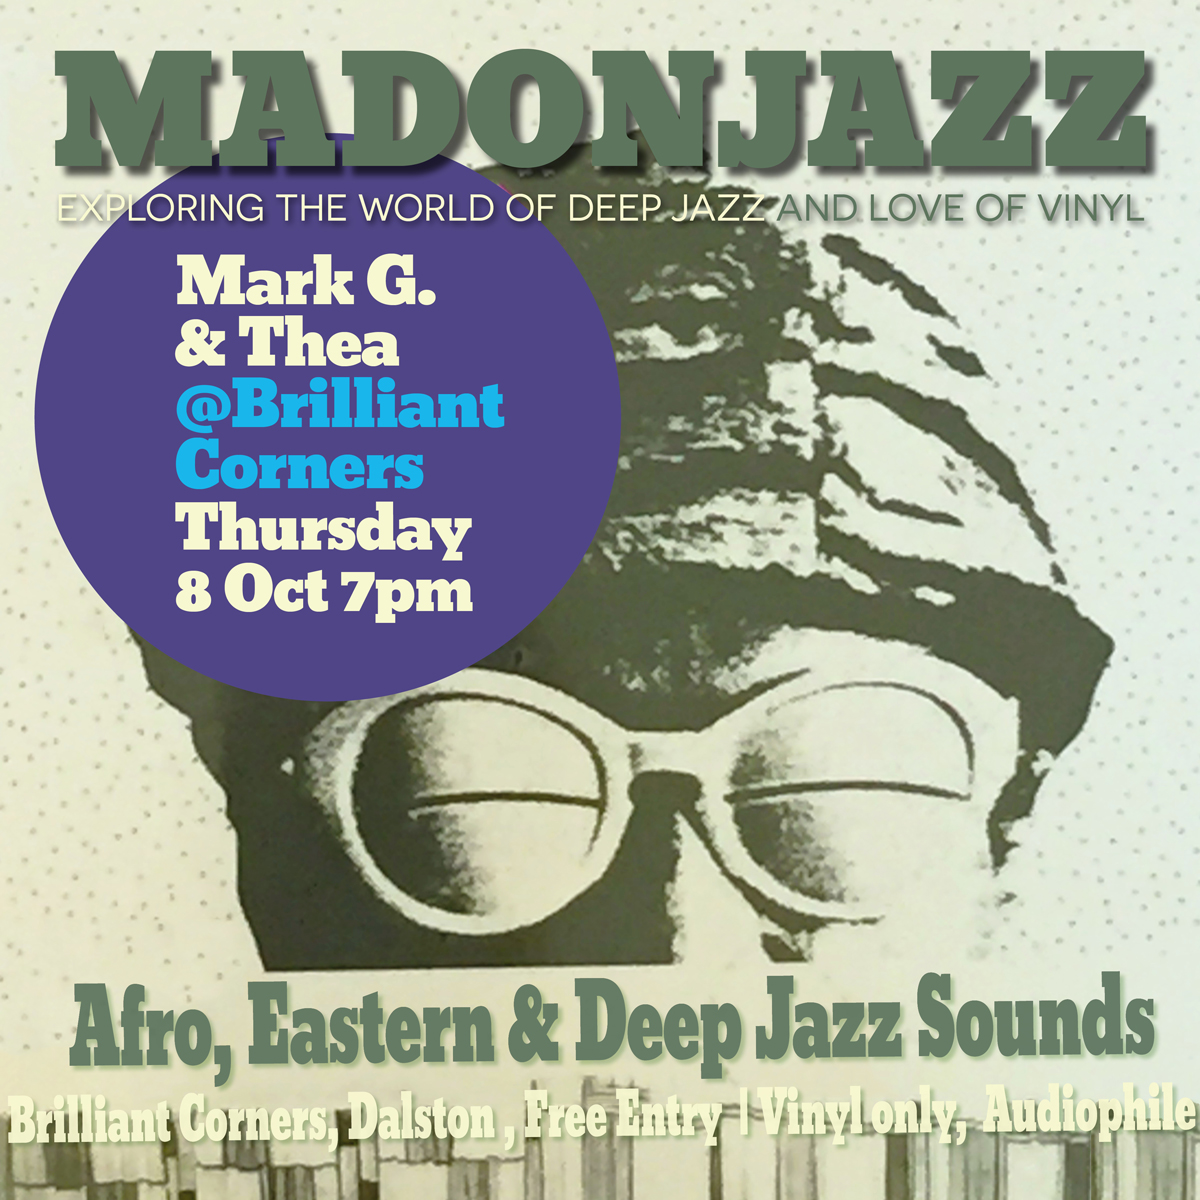 MADONJAZZ AT BRILLIANT CORNERS 8OCT